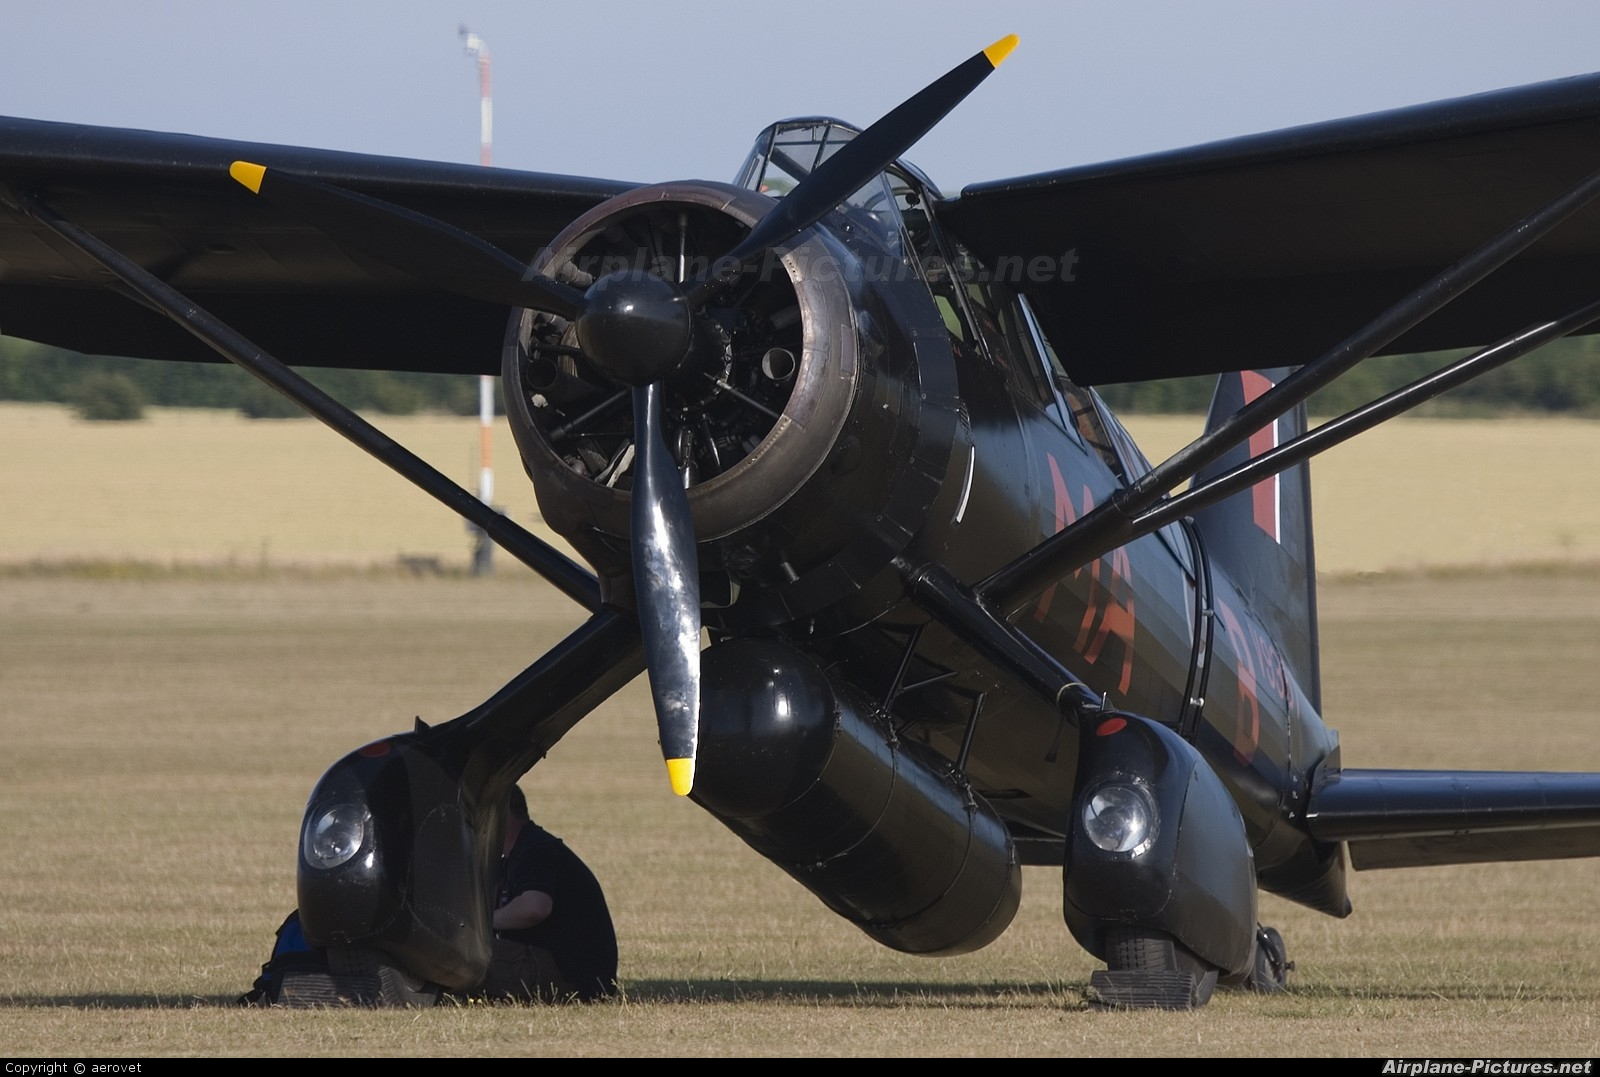 The Shuttleworth Collection G-AZWT aircraft at Duxford